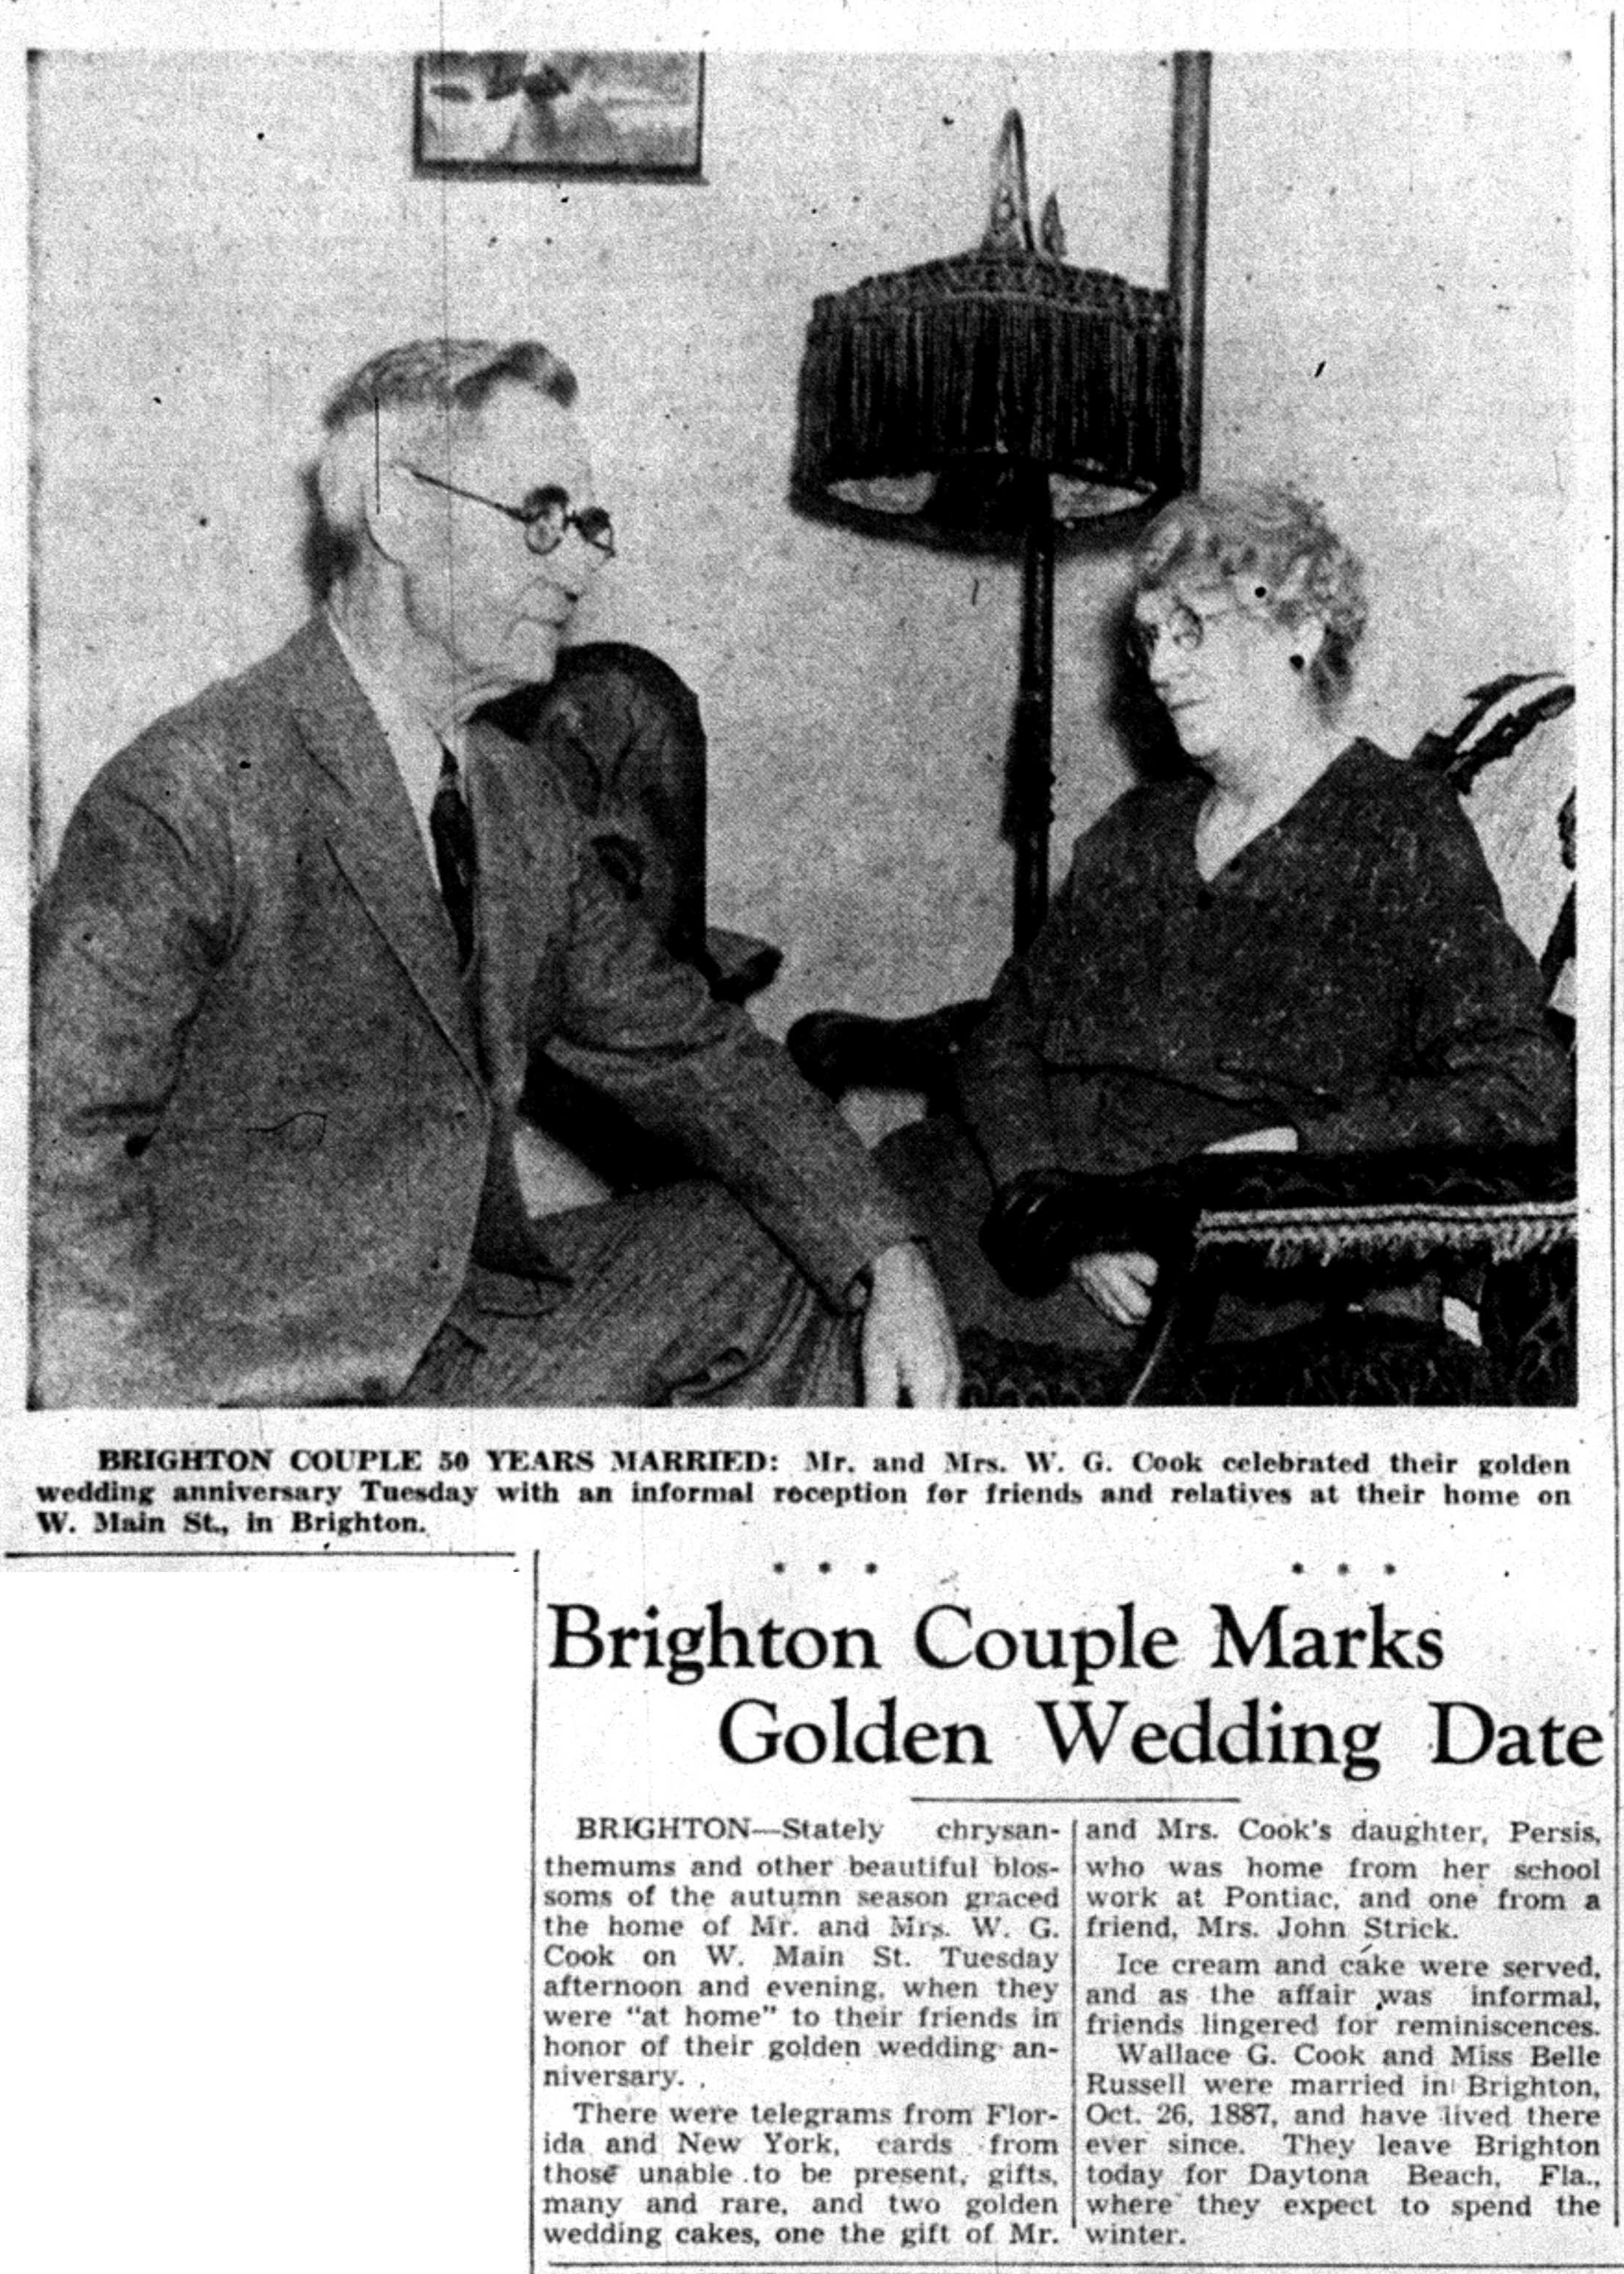 Brighton Couple Marks Golden Wedding Date image